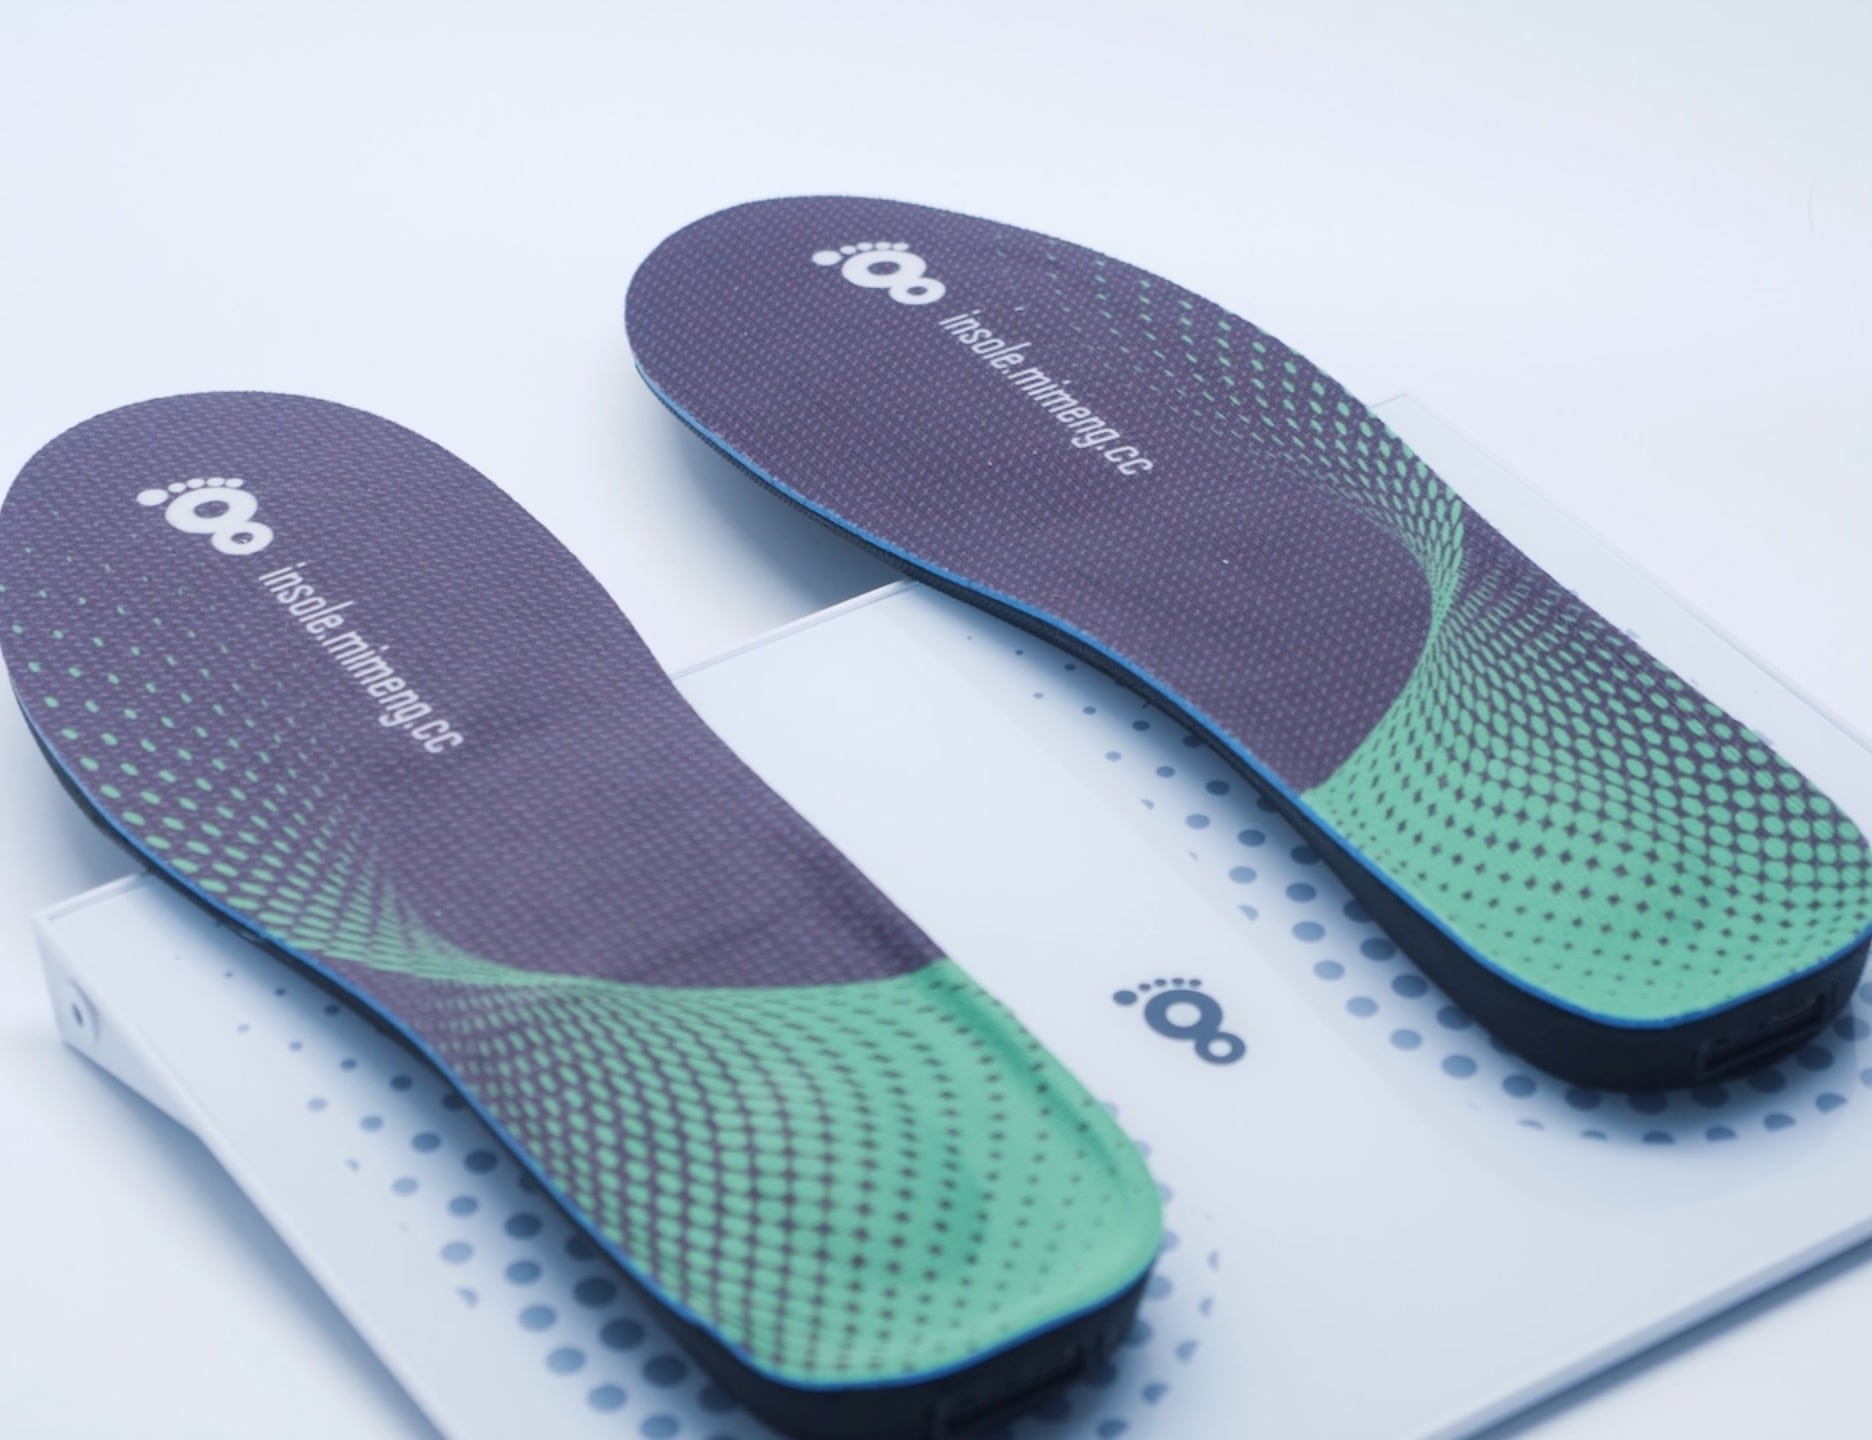 MiMeng Smart Heated Insoles